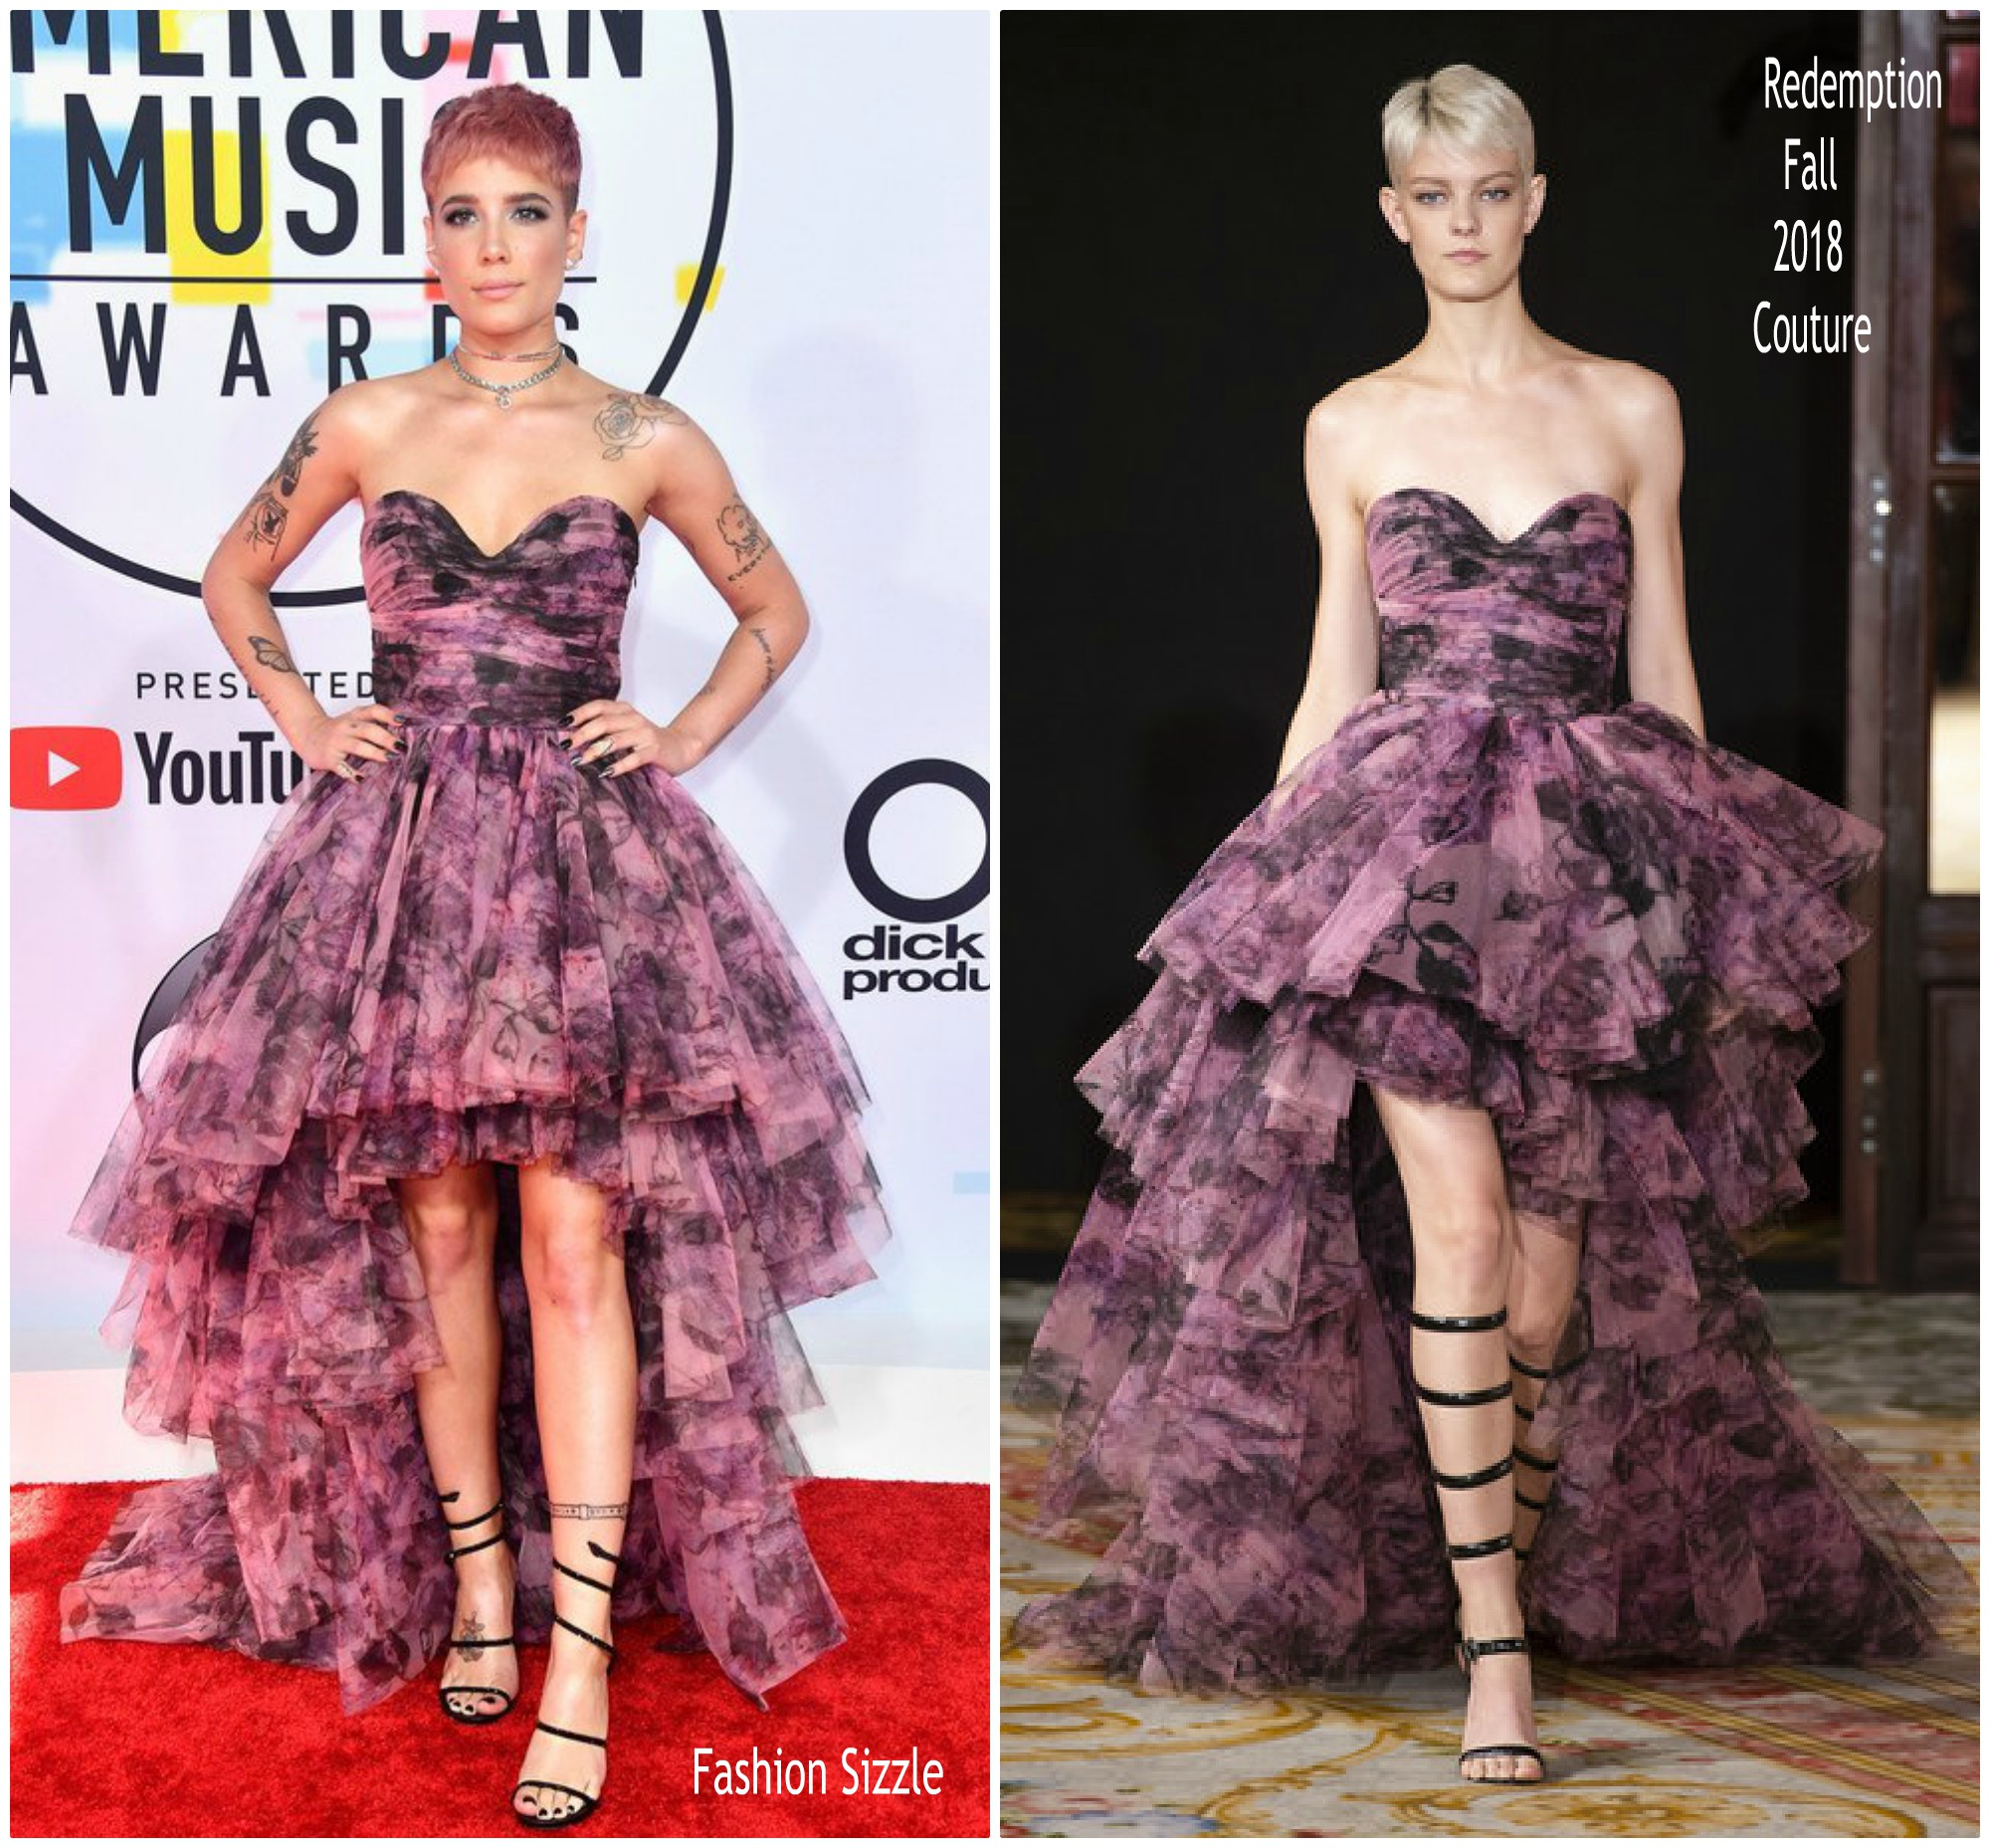 halsey-in-redemption-couture-2018-american-music-awards